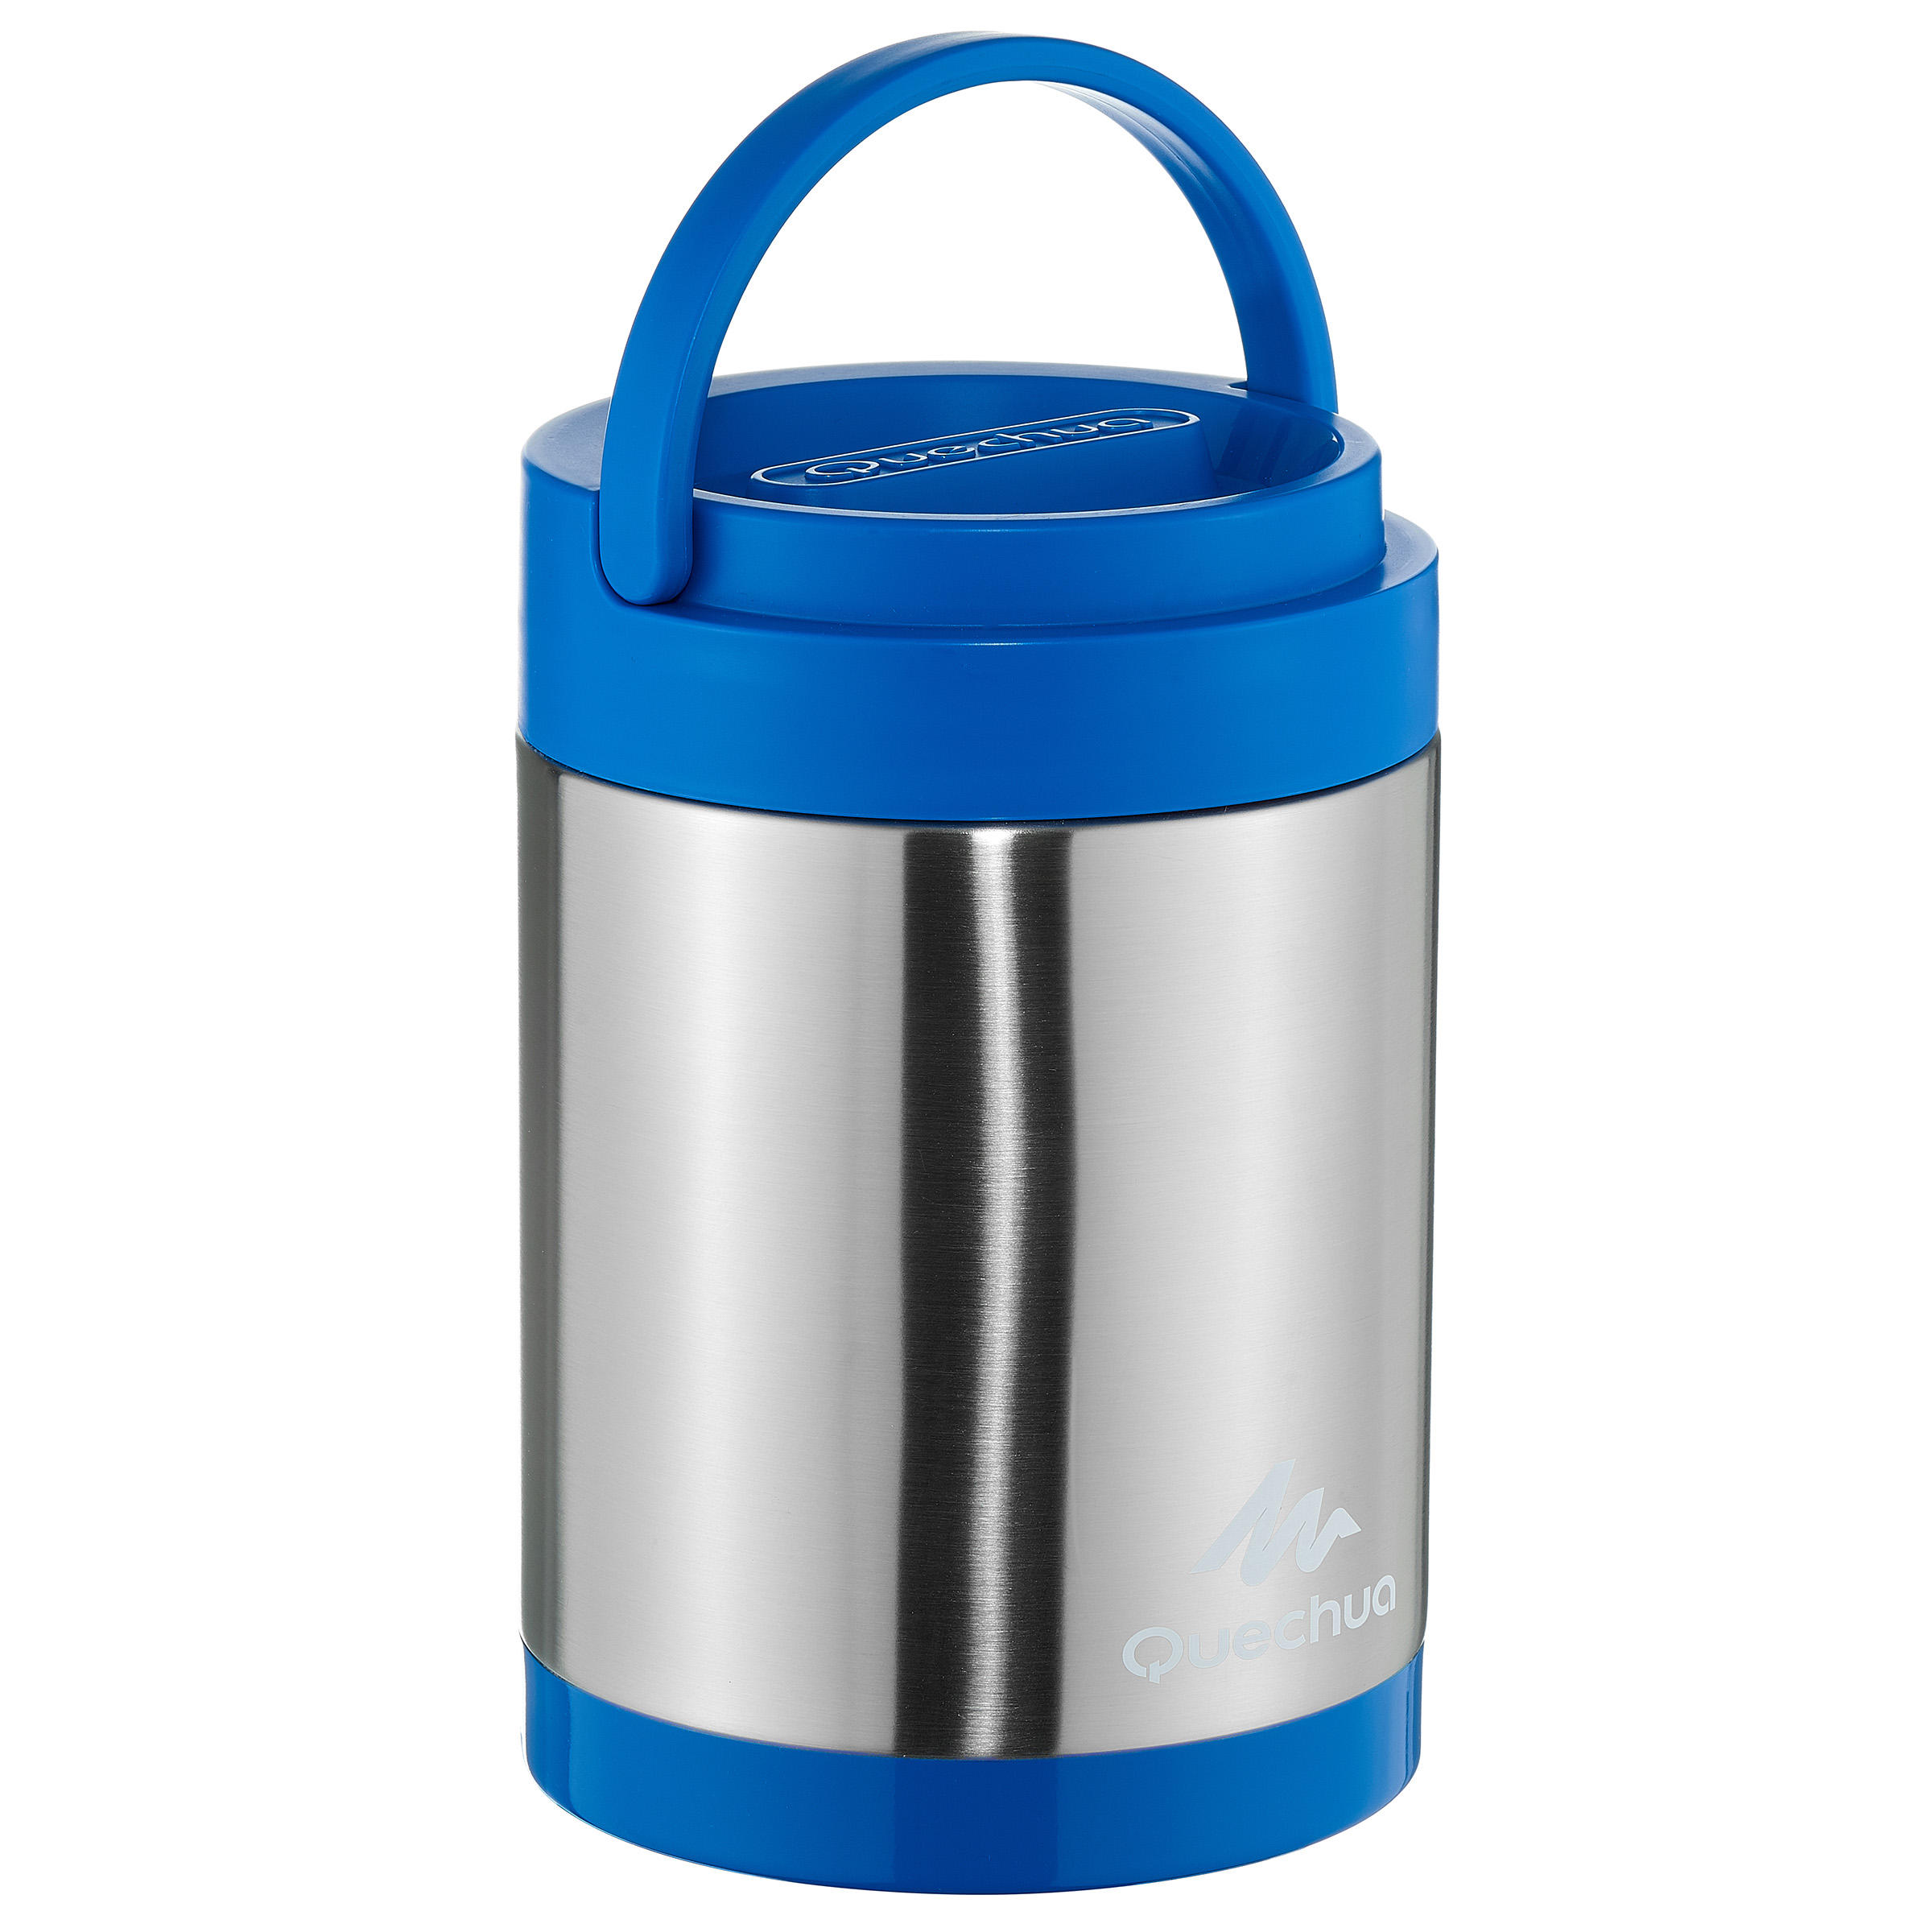 Stainless steel isothermal food box (with 2 food compartments) 2 L